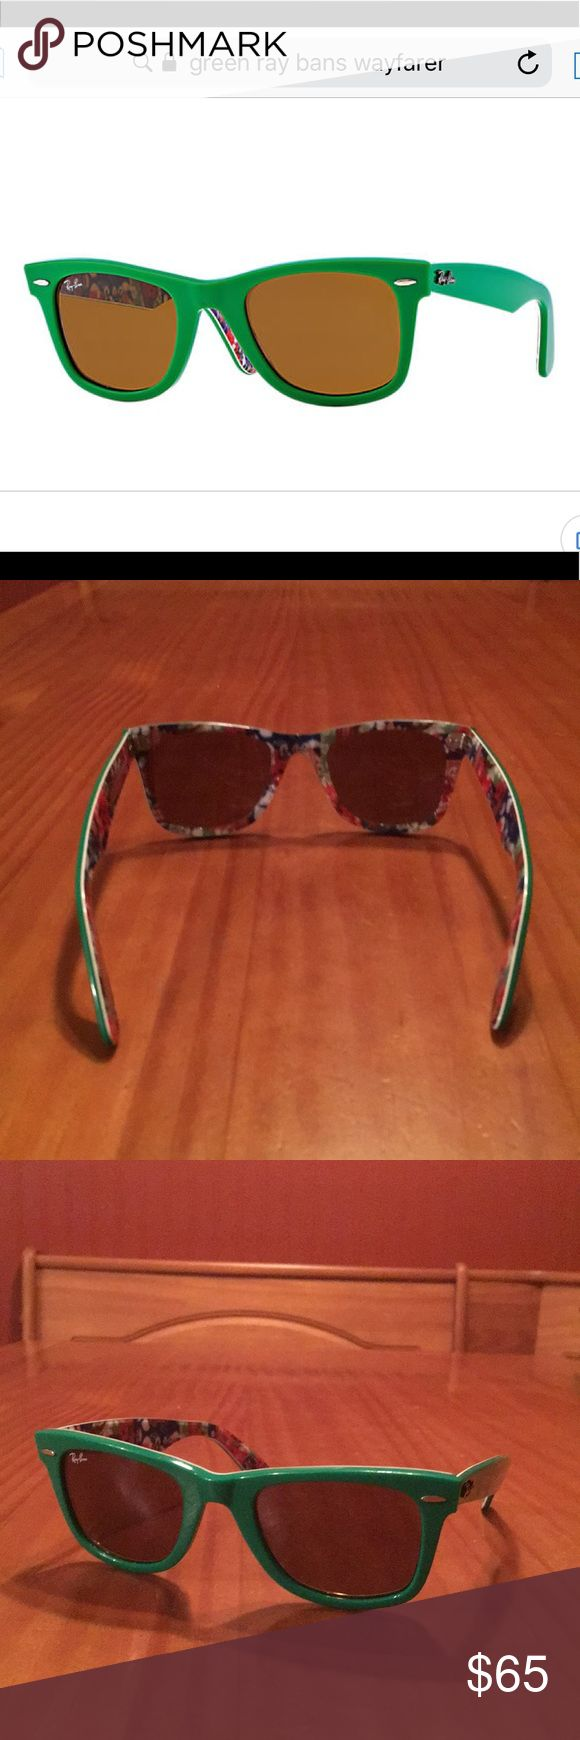 Ray-Bans original wayfarer rare prints sunglasses Green & multicolor Ray-ban original wayfarer rare print sunglasses. Does not come with a case. Condition: good (scuff on one wing) Ray-Ban Accessories Sunglasses